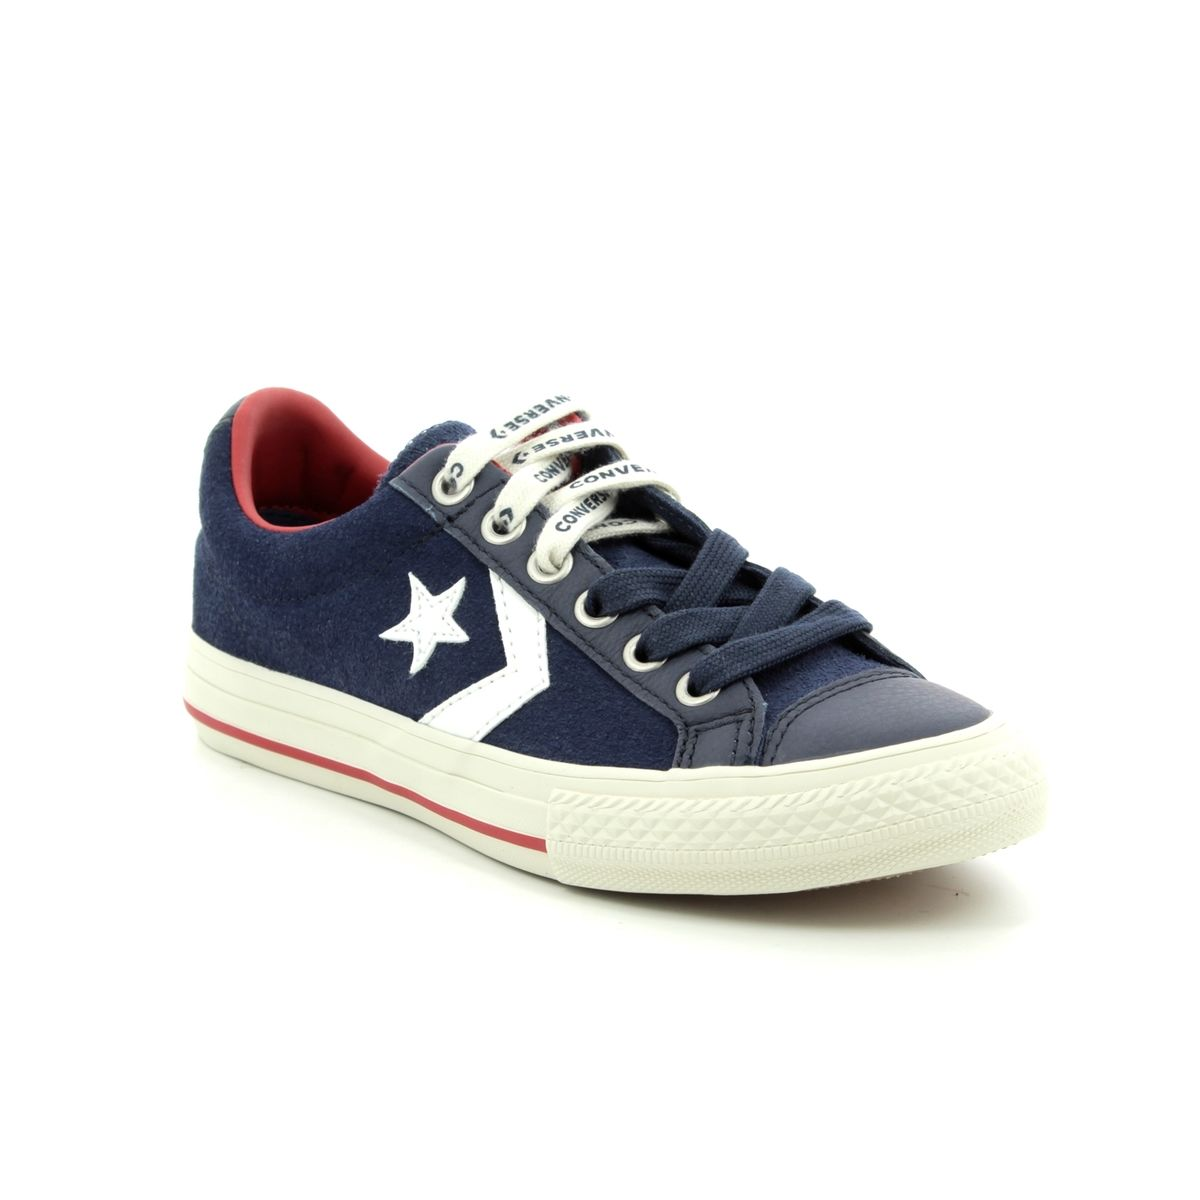 3c51013d2fe340 Converse Star Player Junior 662766C-70 Navy Suede Boys Trainers